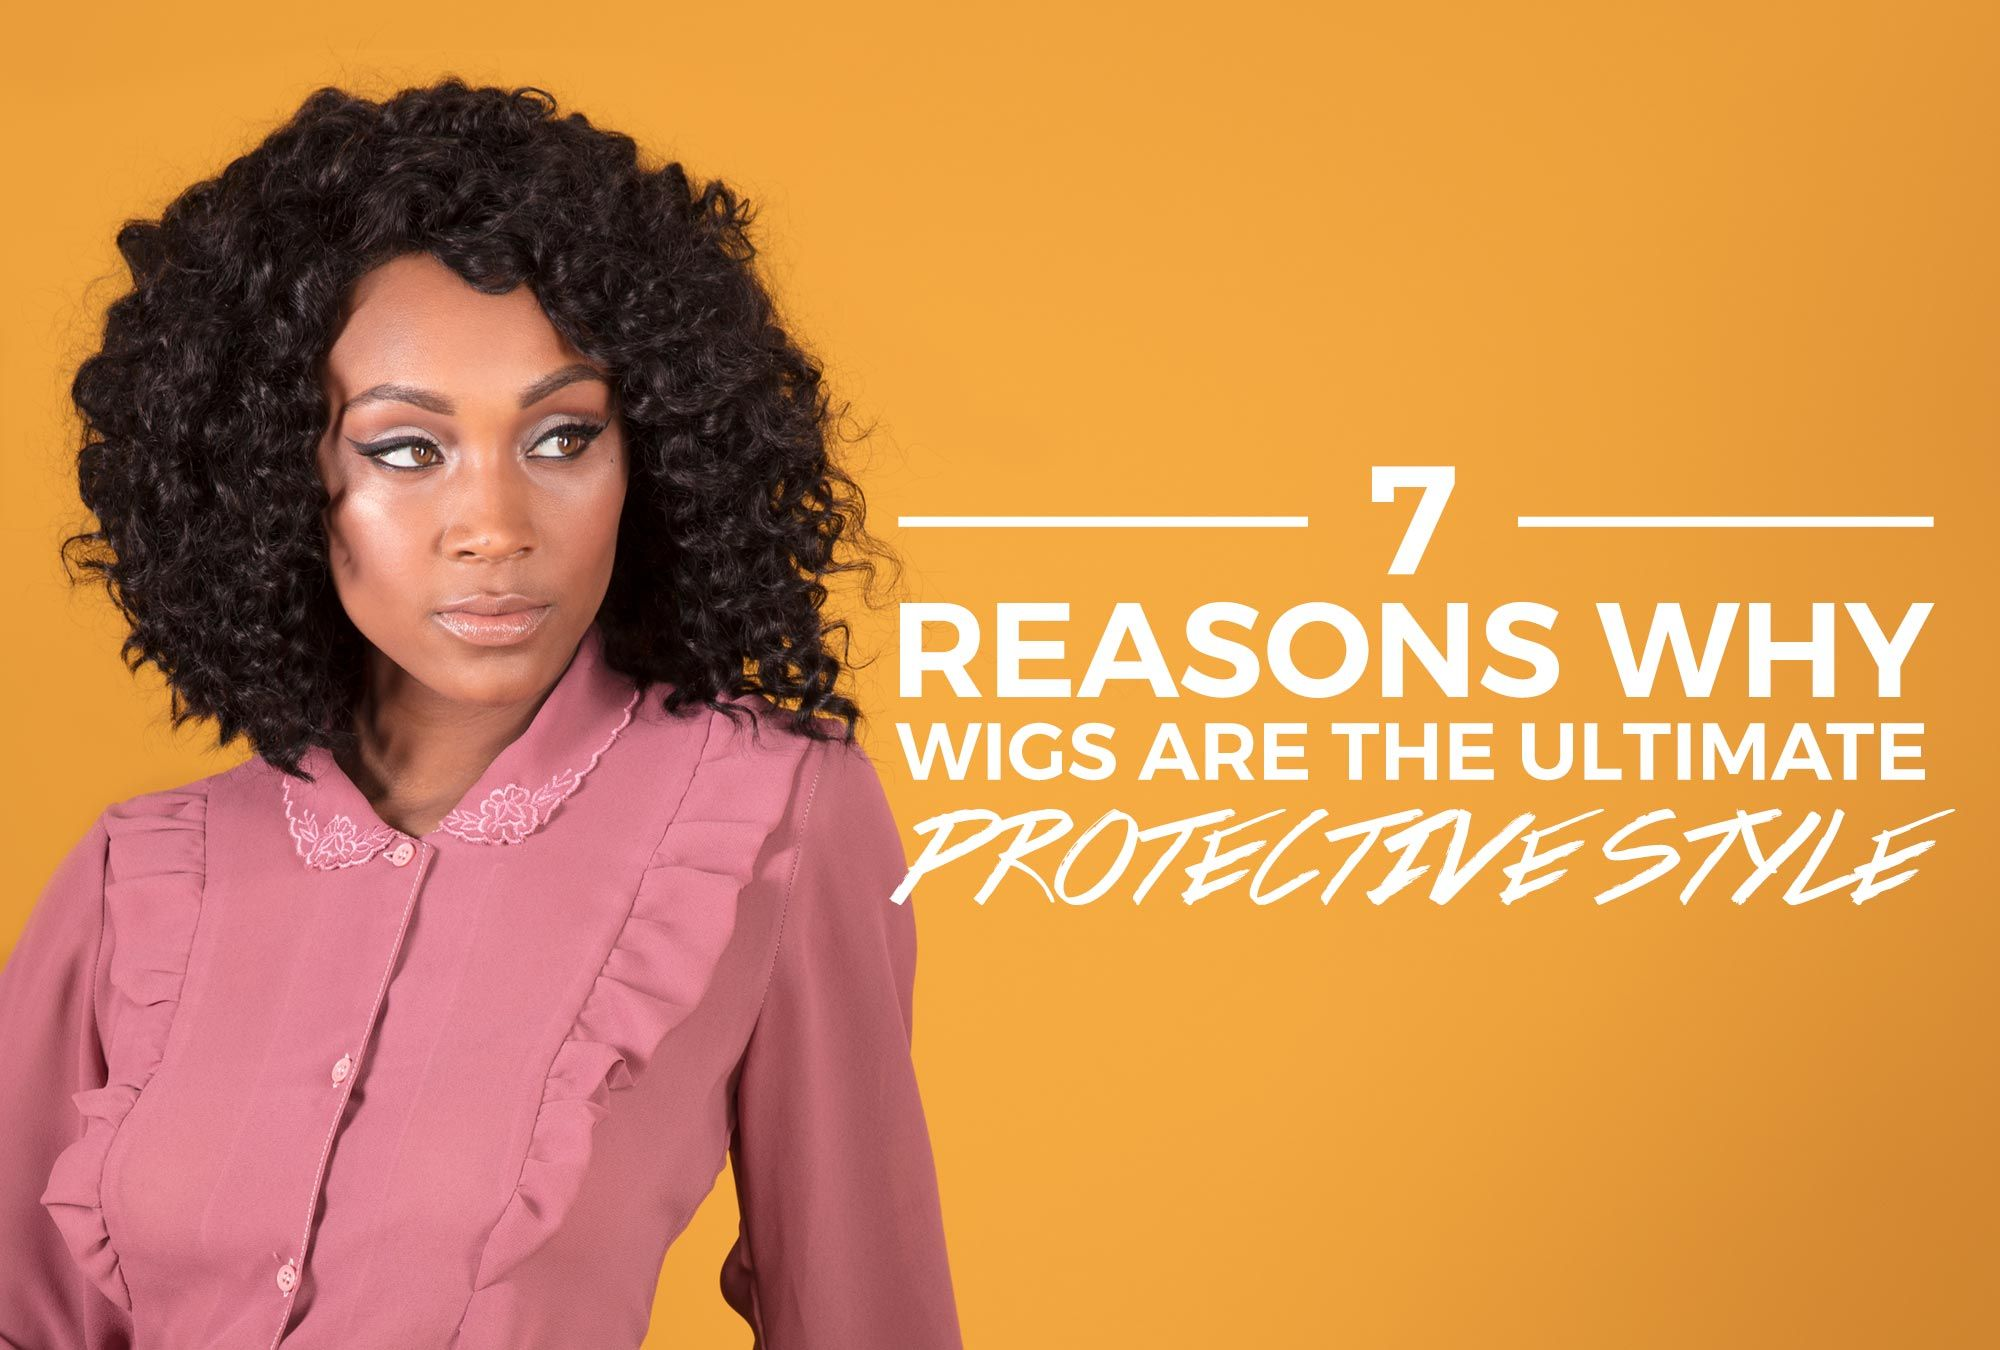 7 Reasons Why Wigs Are the Ultimate Protective Style